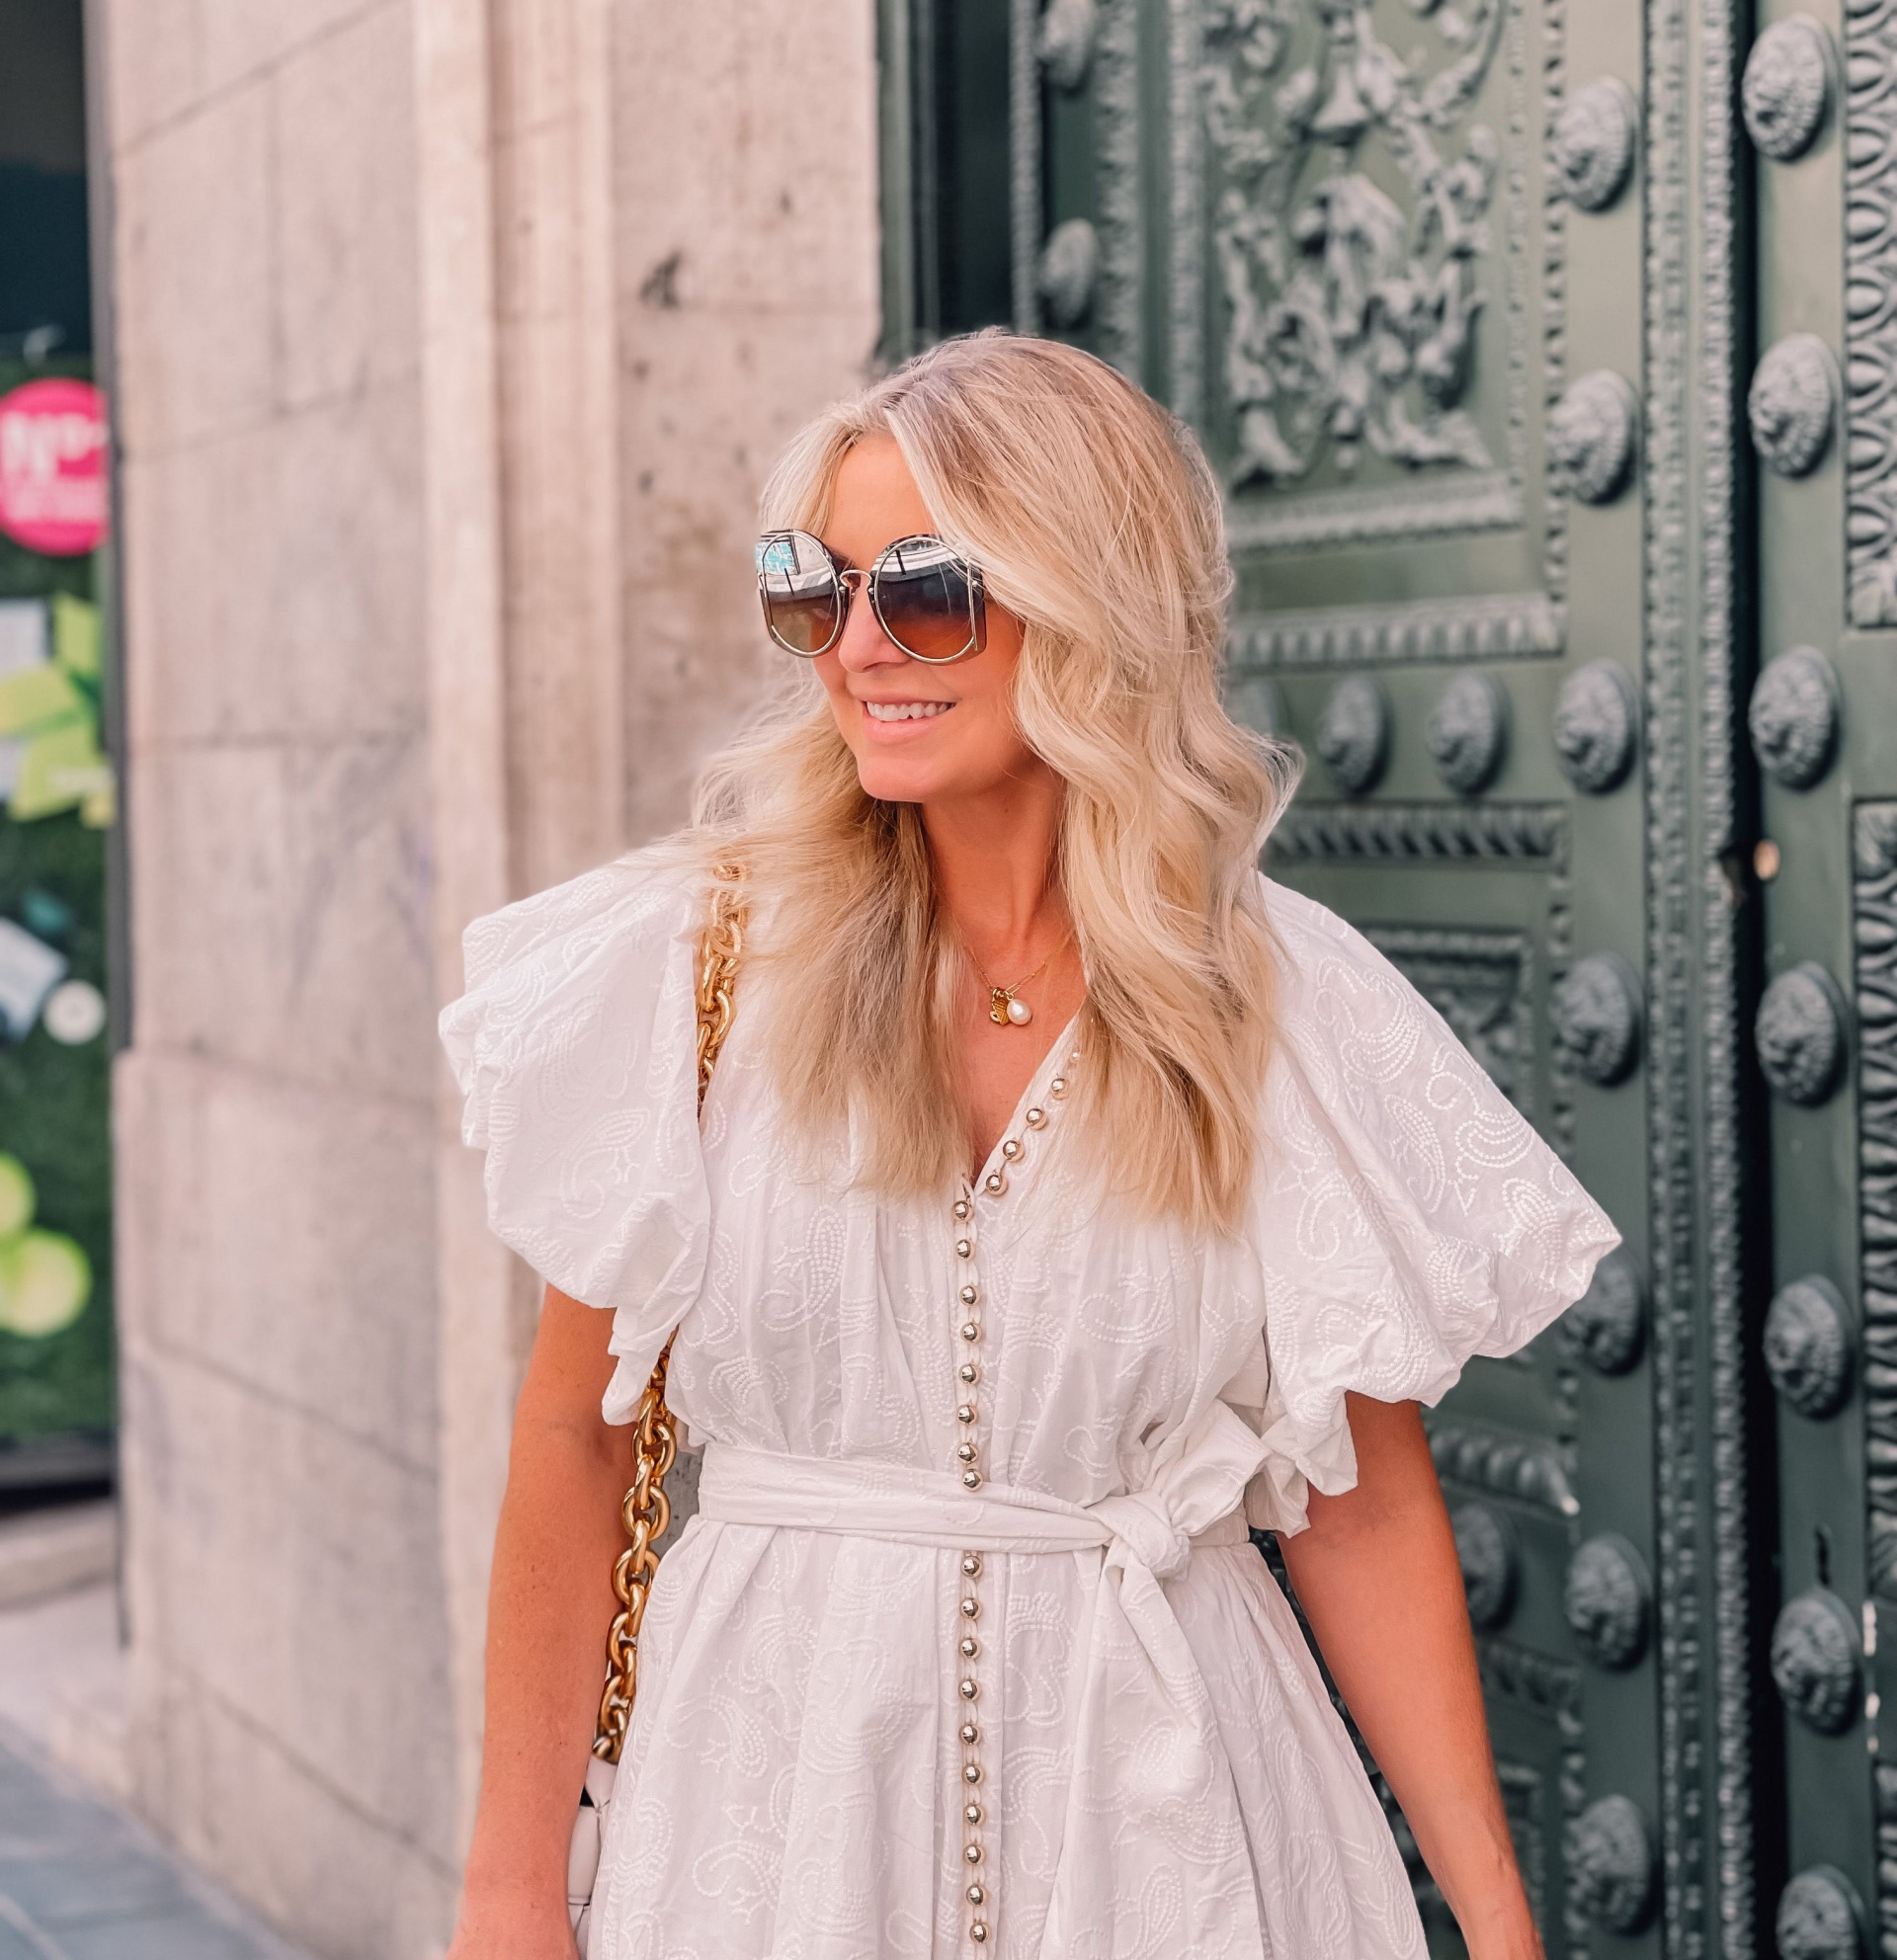 white dress by Acler with puff sleeves on fashion over 40 blogger Erin Busbee in Madrid Spain